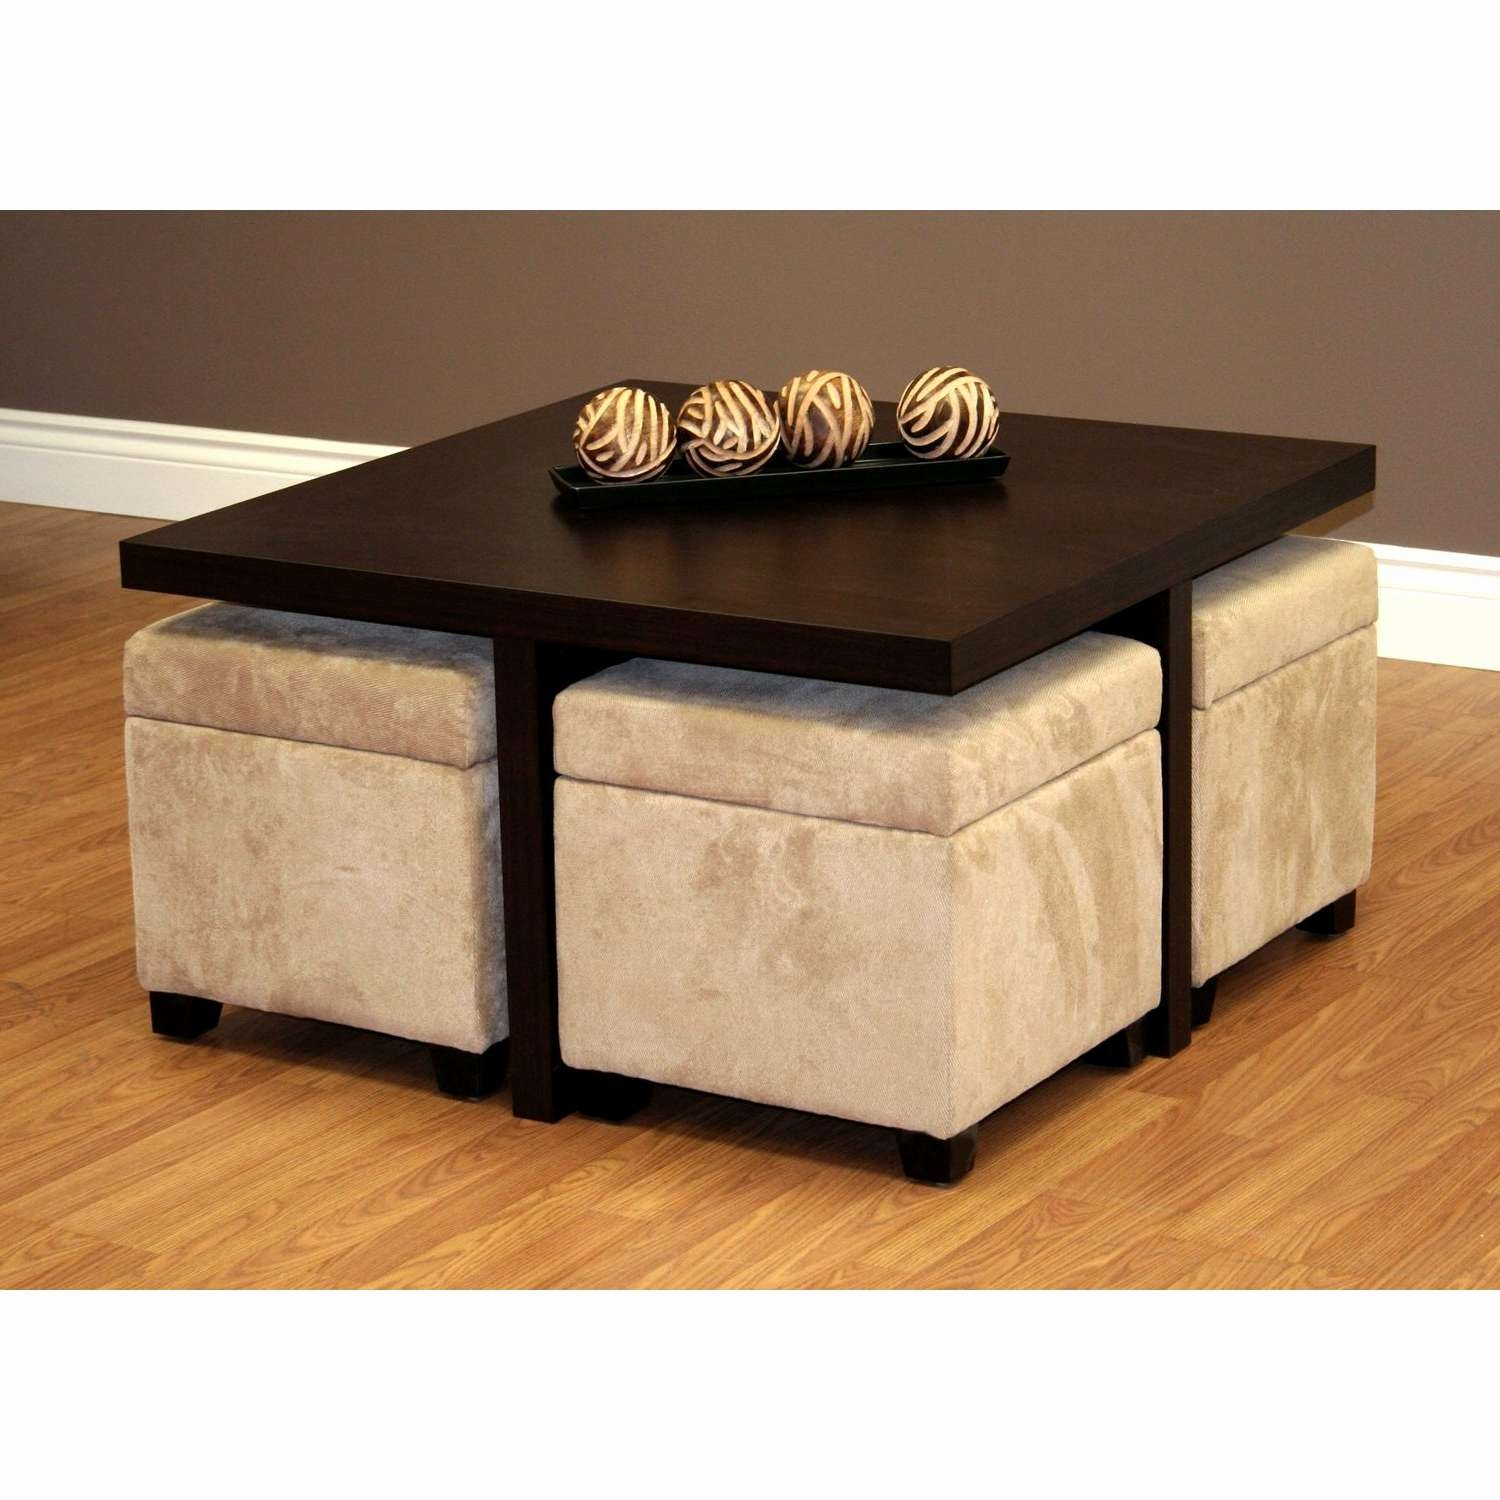 54 Unique Modern Coffee Table With Storage – Home Furniture Ideas Intended For Best And Newest Coffee Tables With Box Storage (View 16 of 20)